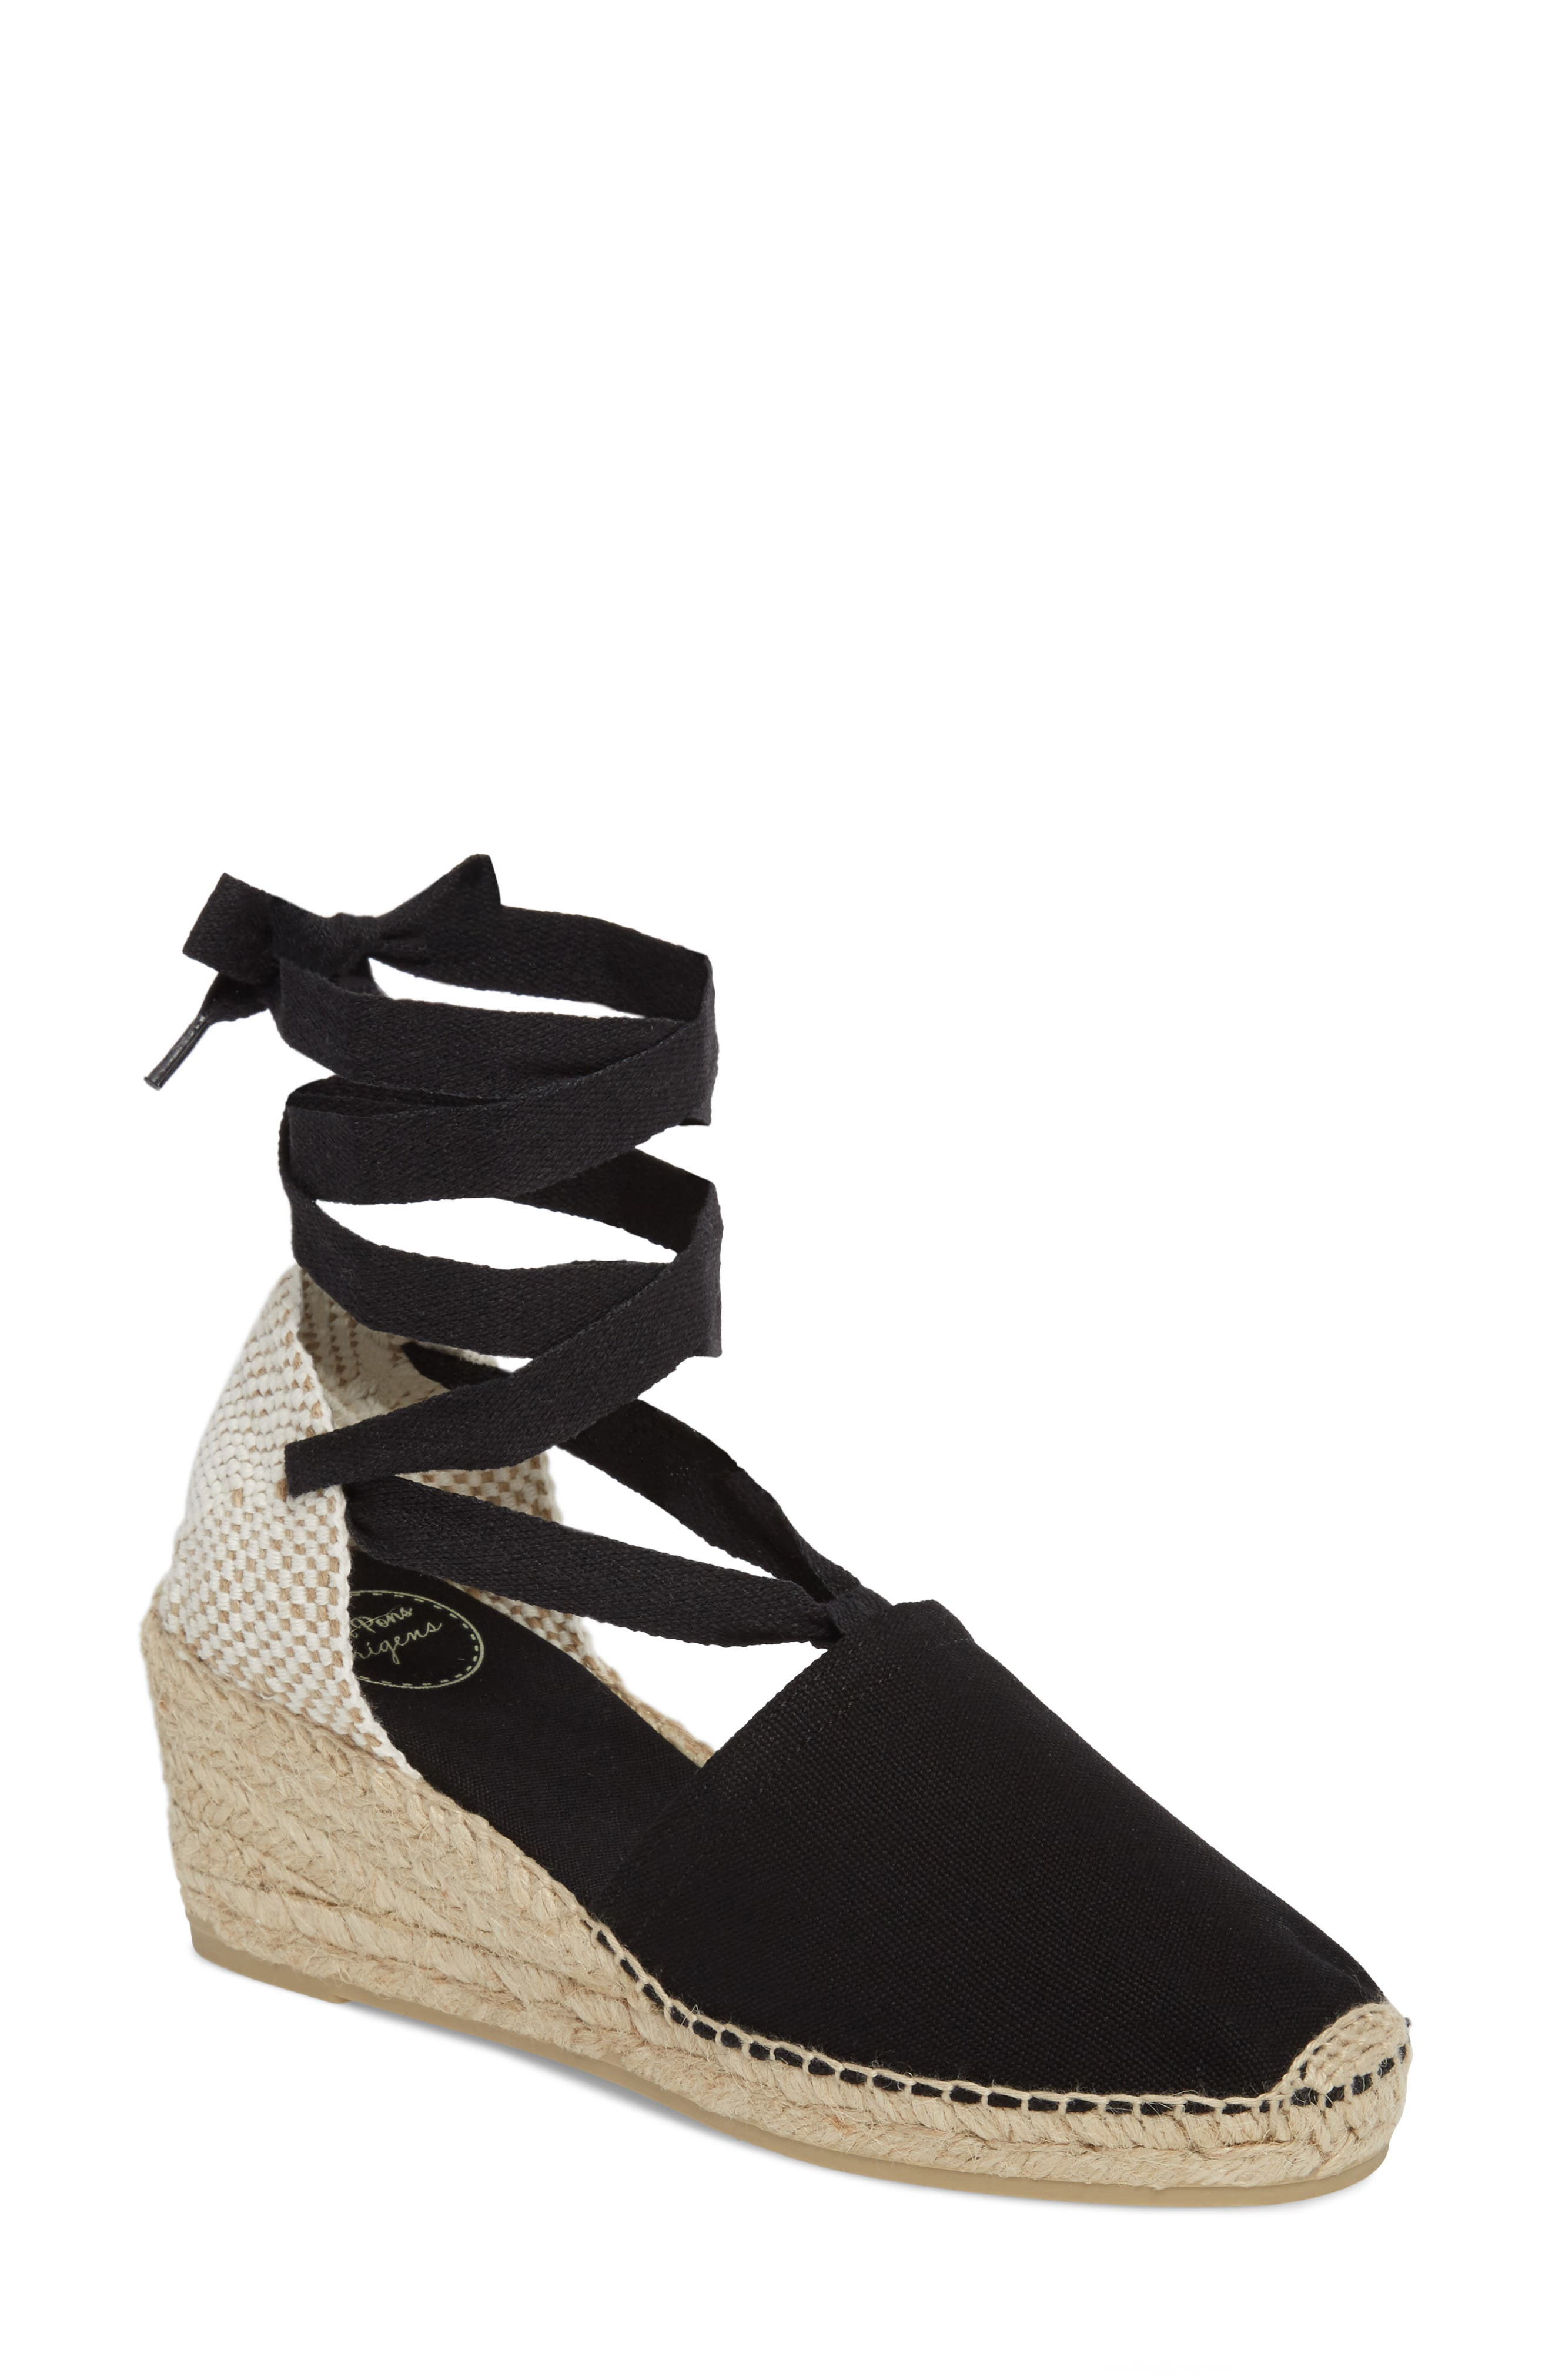 TONI PONS Valencia Wraparound Espadrille Wedge, Main, color, BLACK FABRIC